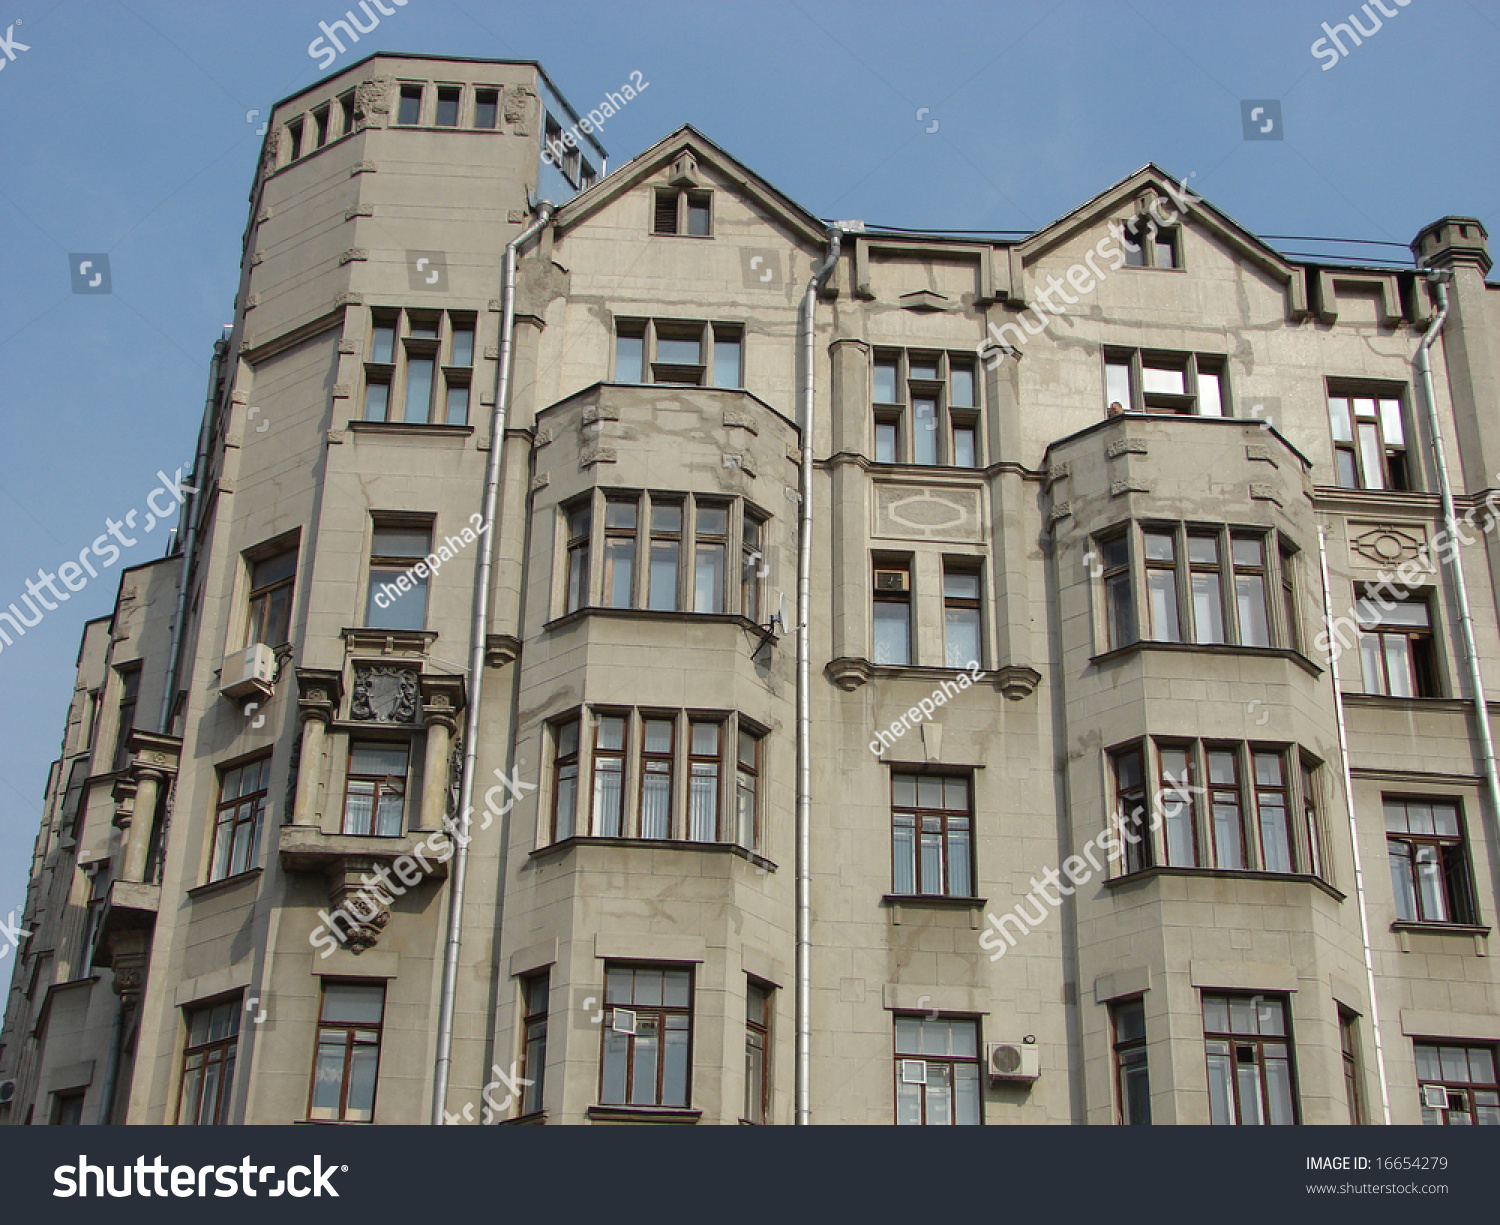 old brick apartment building against a blue sky stock photo 16654279 shutterstock. Black Bedroom Furniture Sets. Home Design Ideas